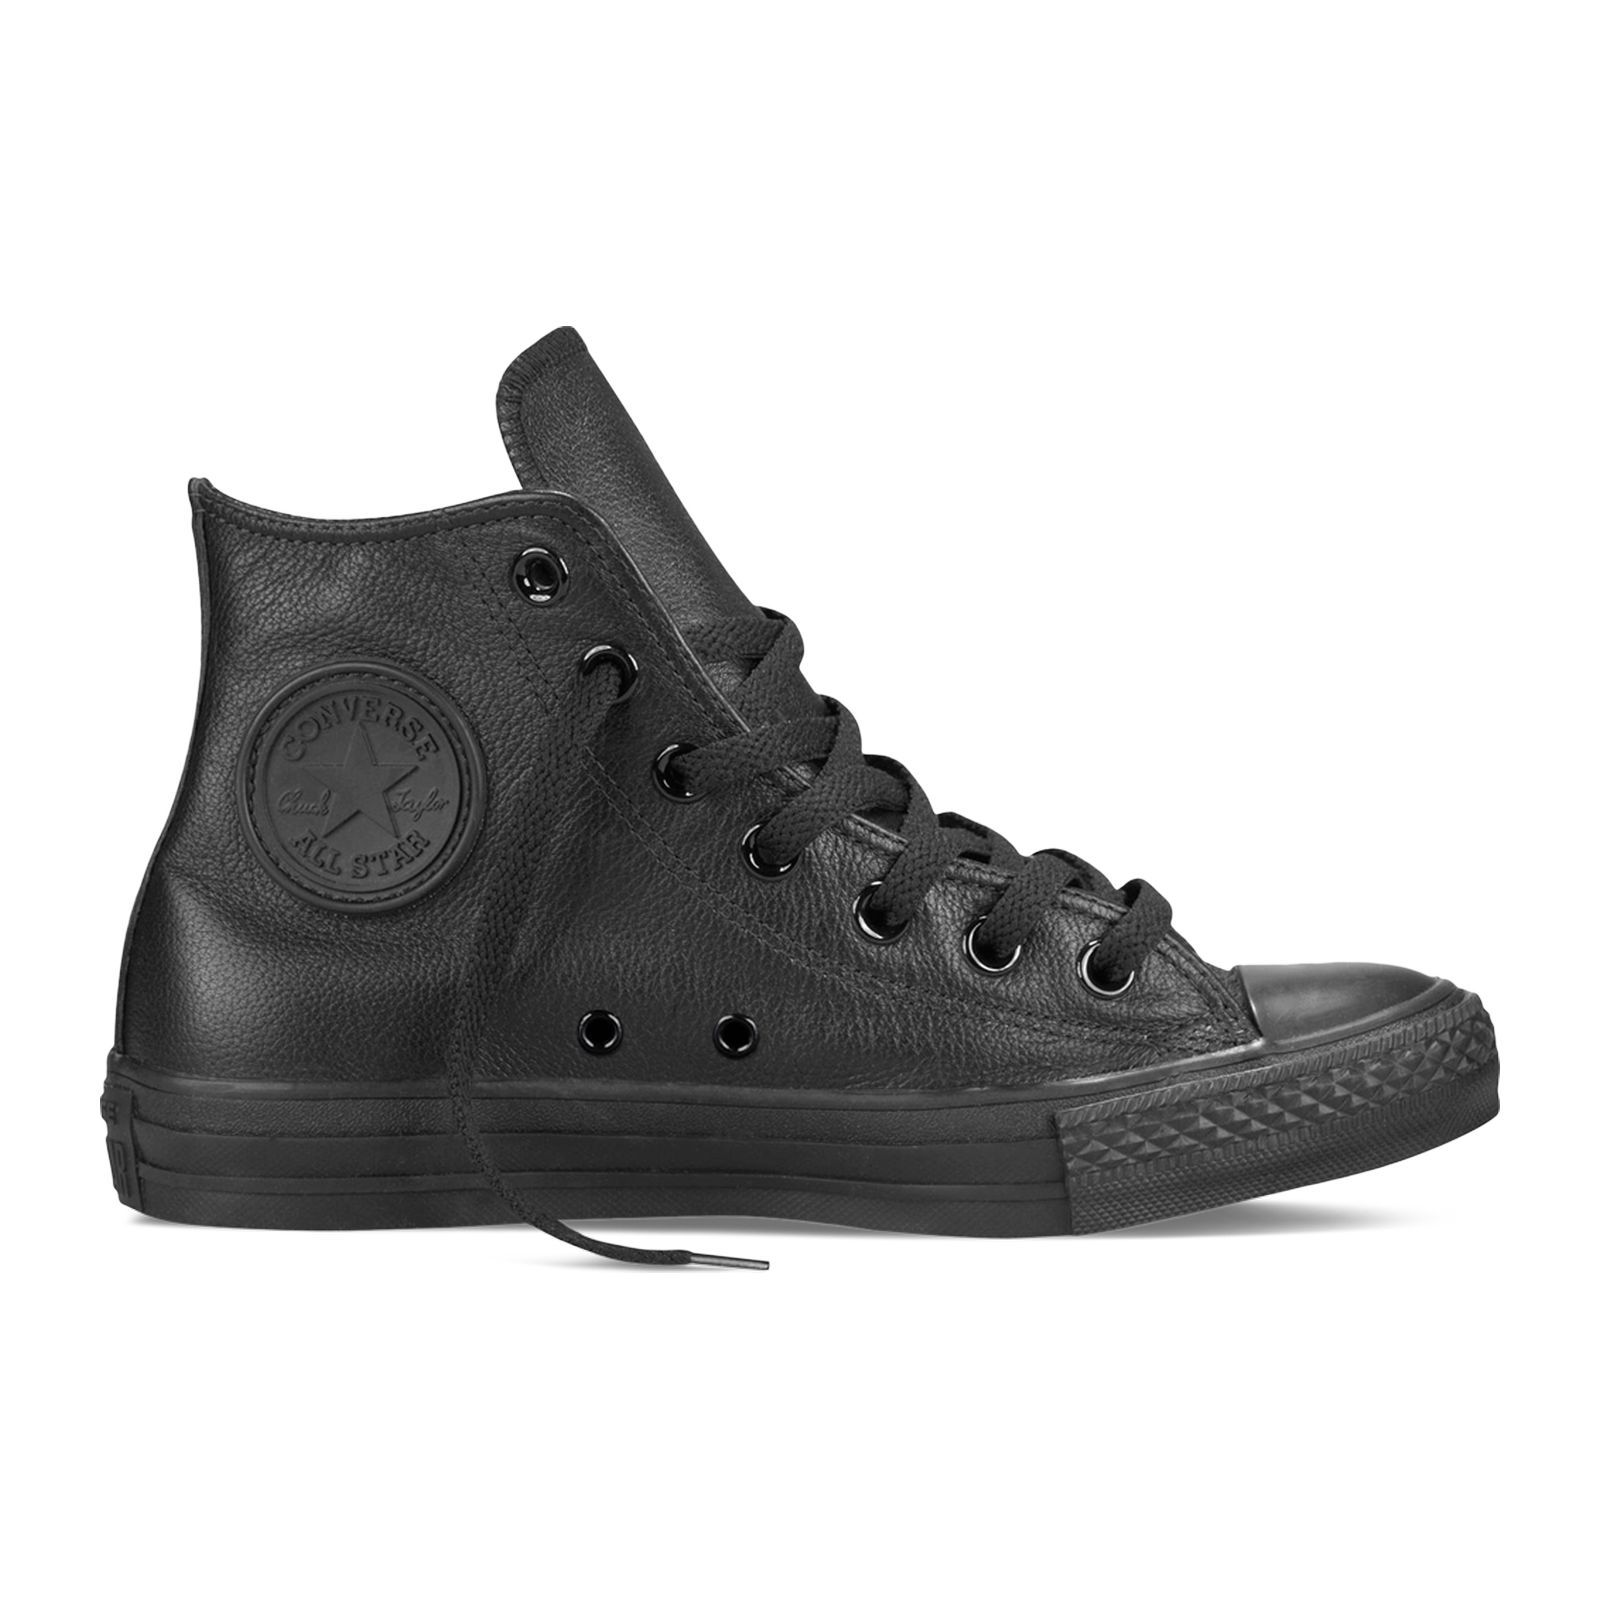 converse chuck taylor all star hi turnschuhe high schwarz brandalley. Black Bedroom Furniture Sets. Home Design Ideas